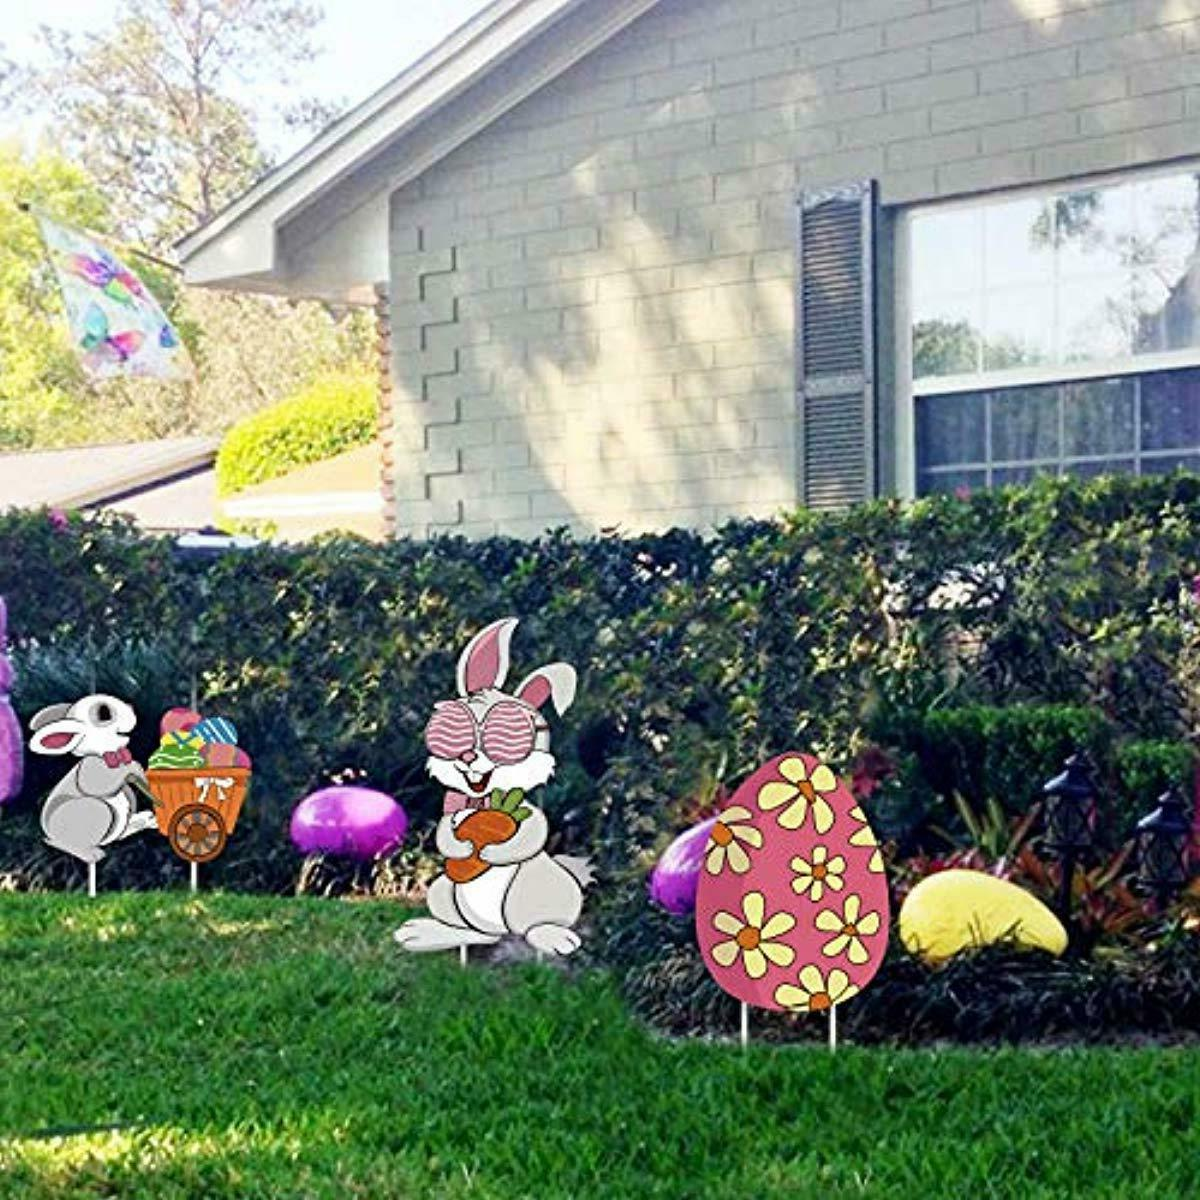 Ivenf Easter 3ct Eggs Corrugate Yard Signs